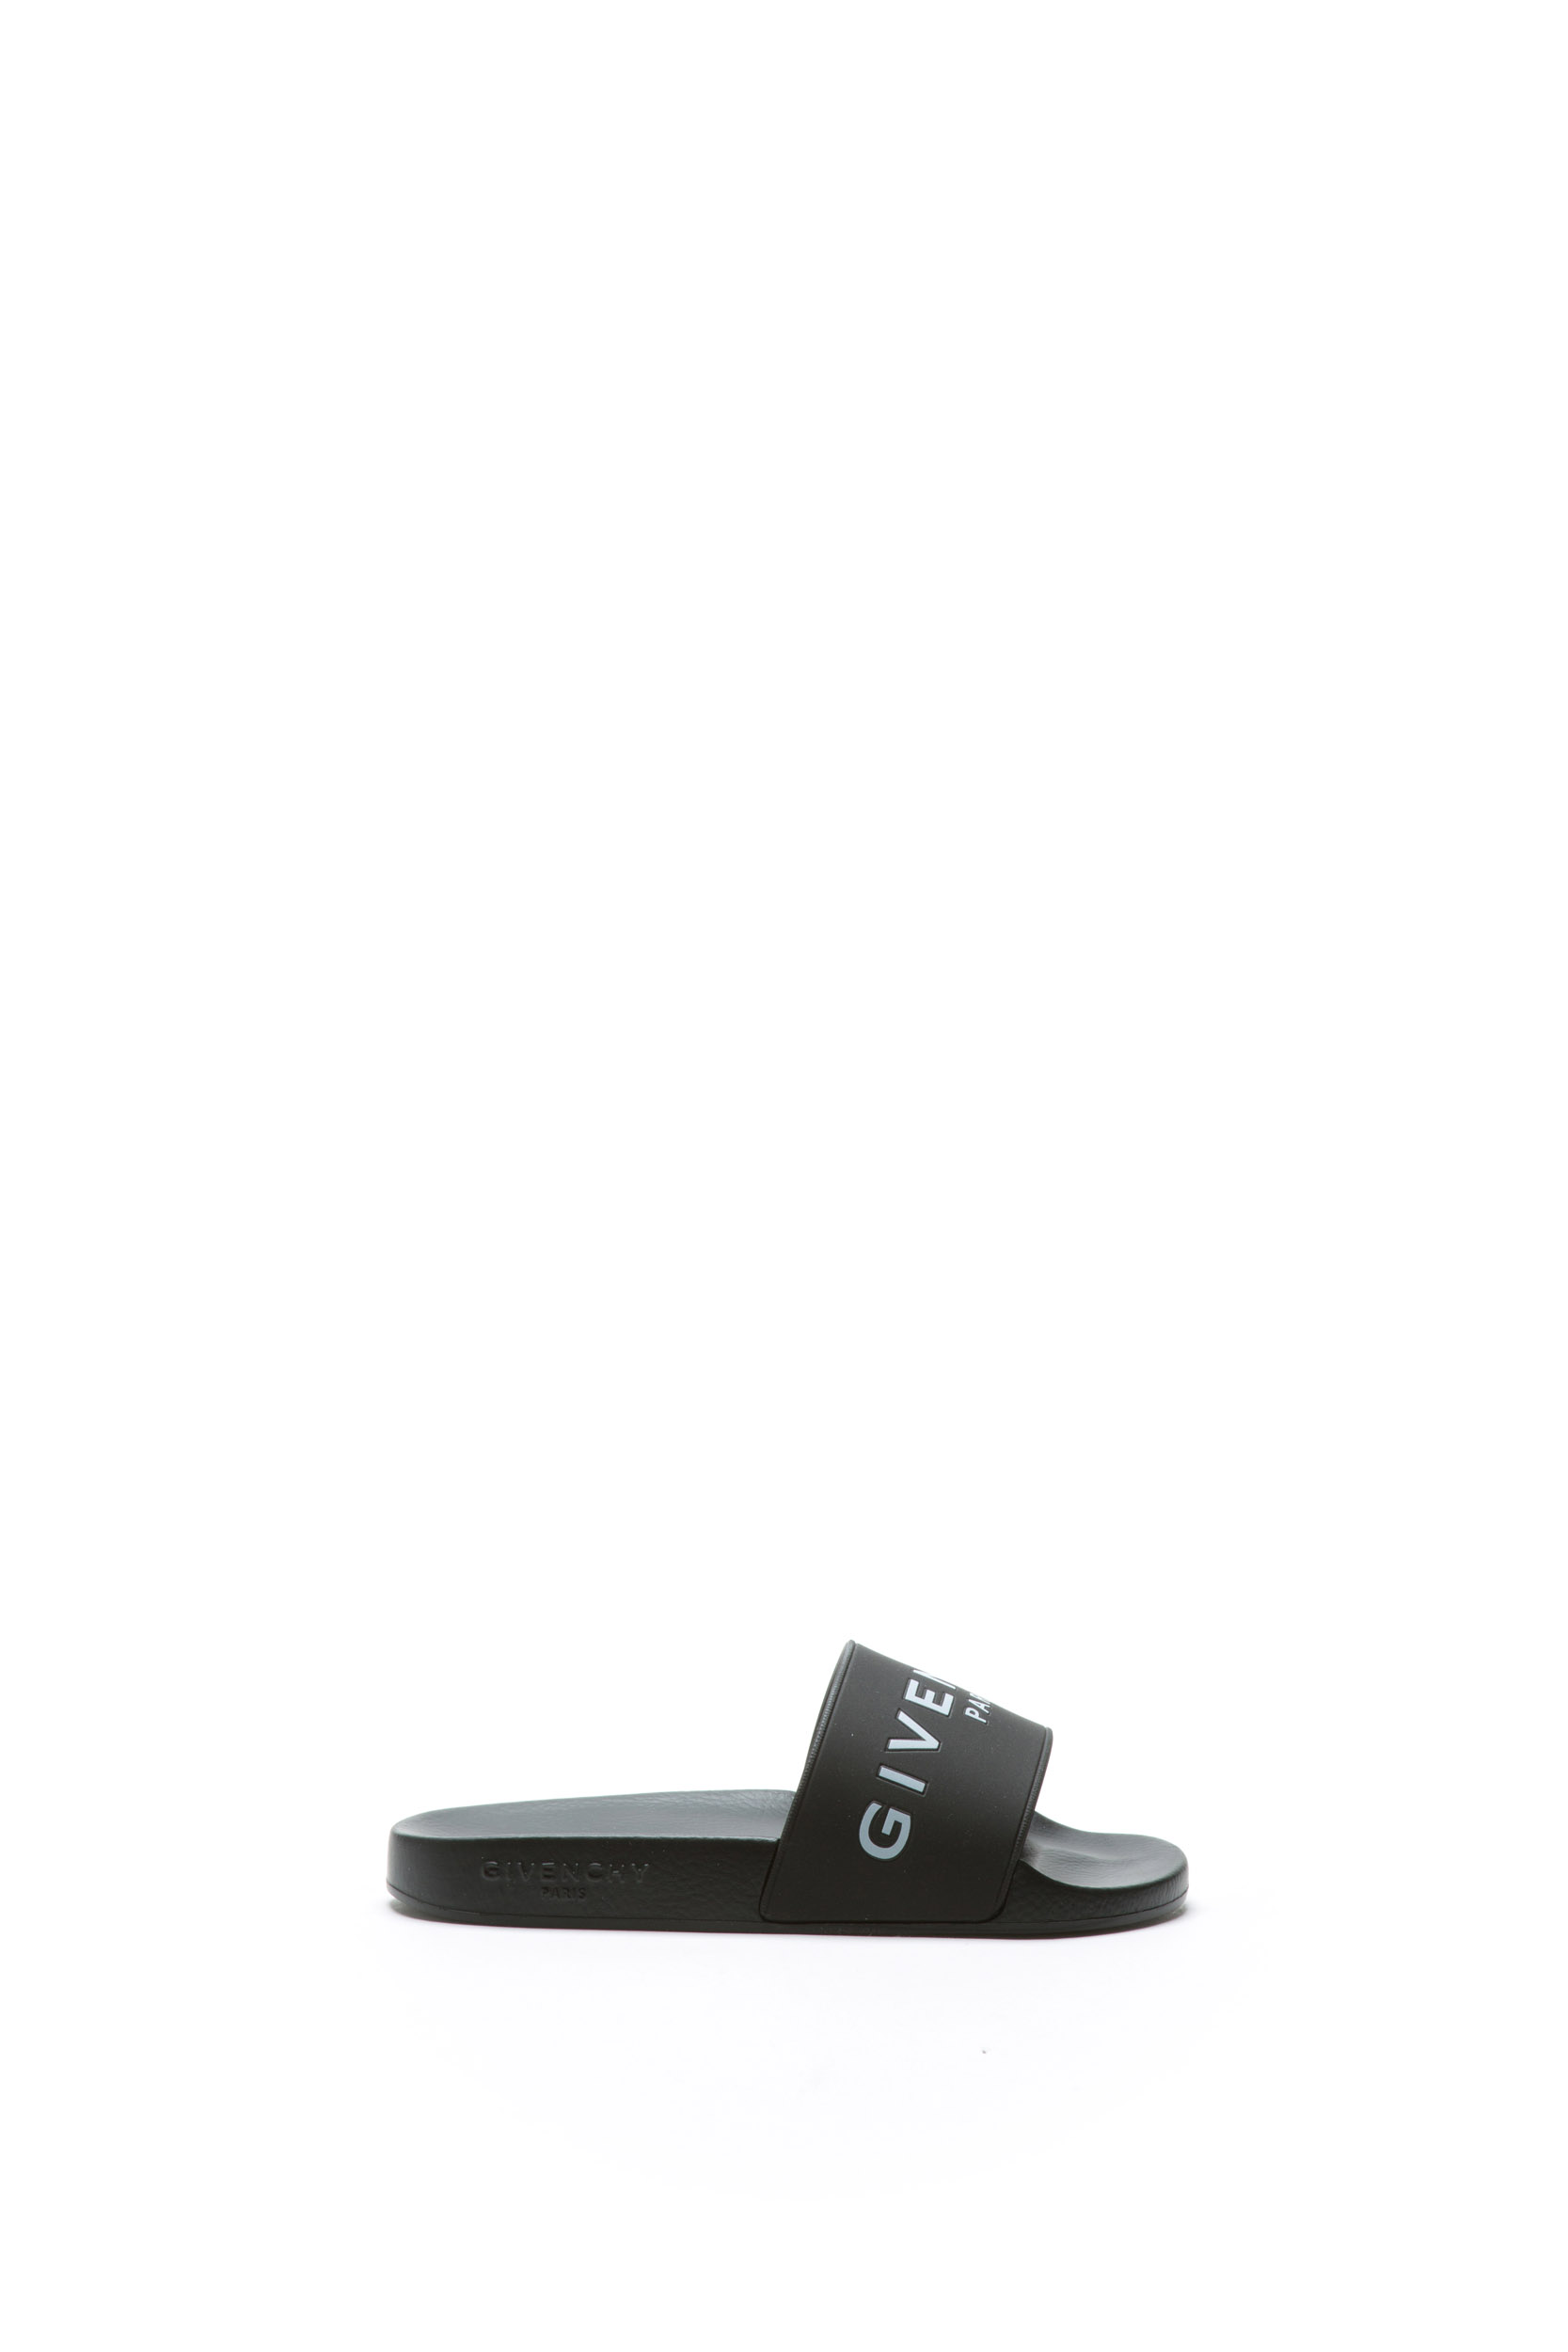 BLACK RUBBER SLIPPERS WITH LOGO